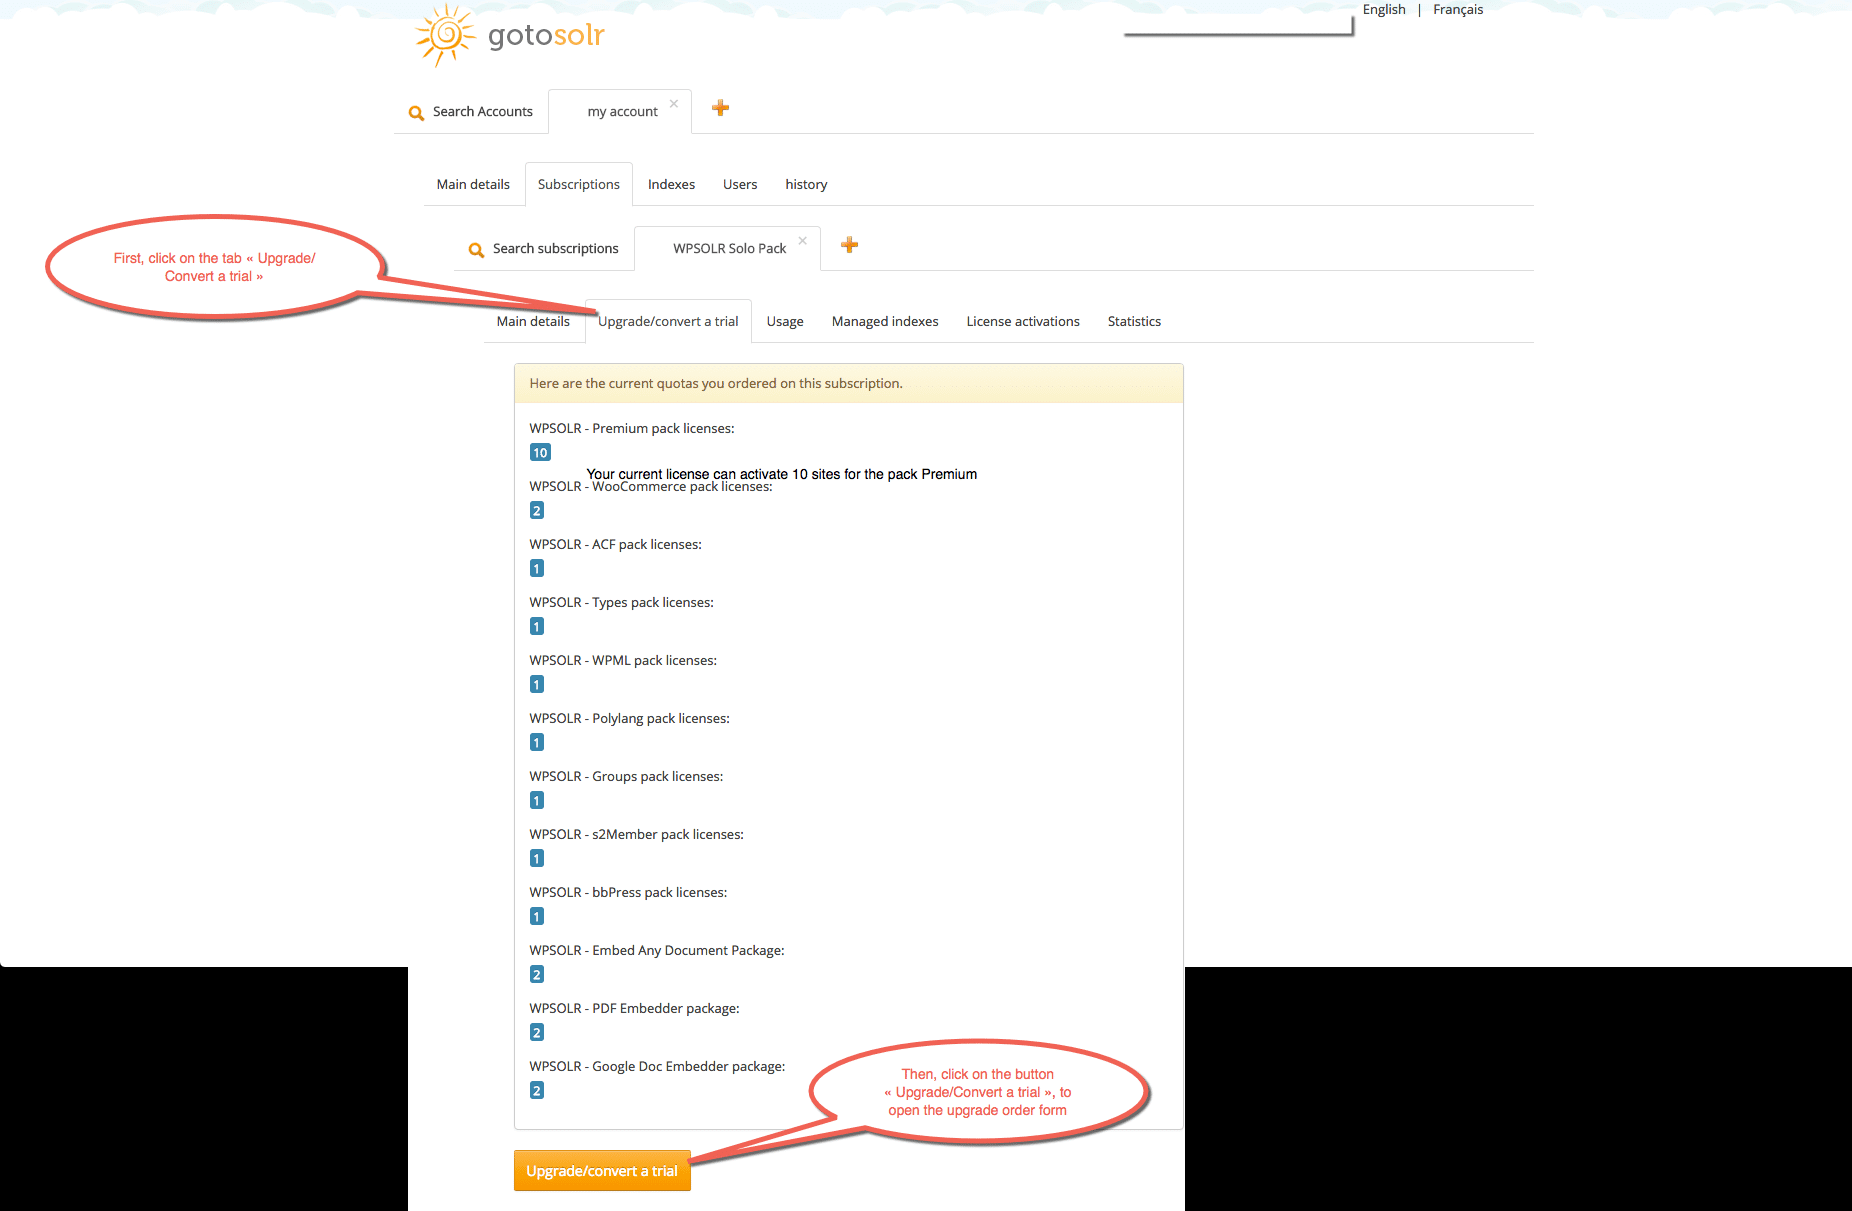 Image wpsolr-upgrade-open-upgrade-form.png of How to upgrade my subscription ?